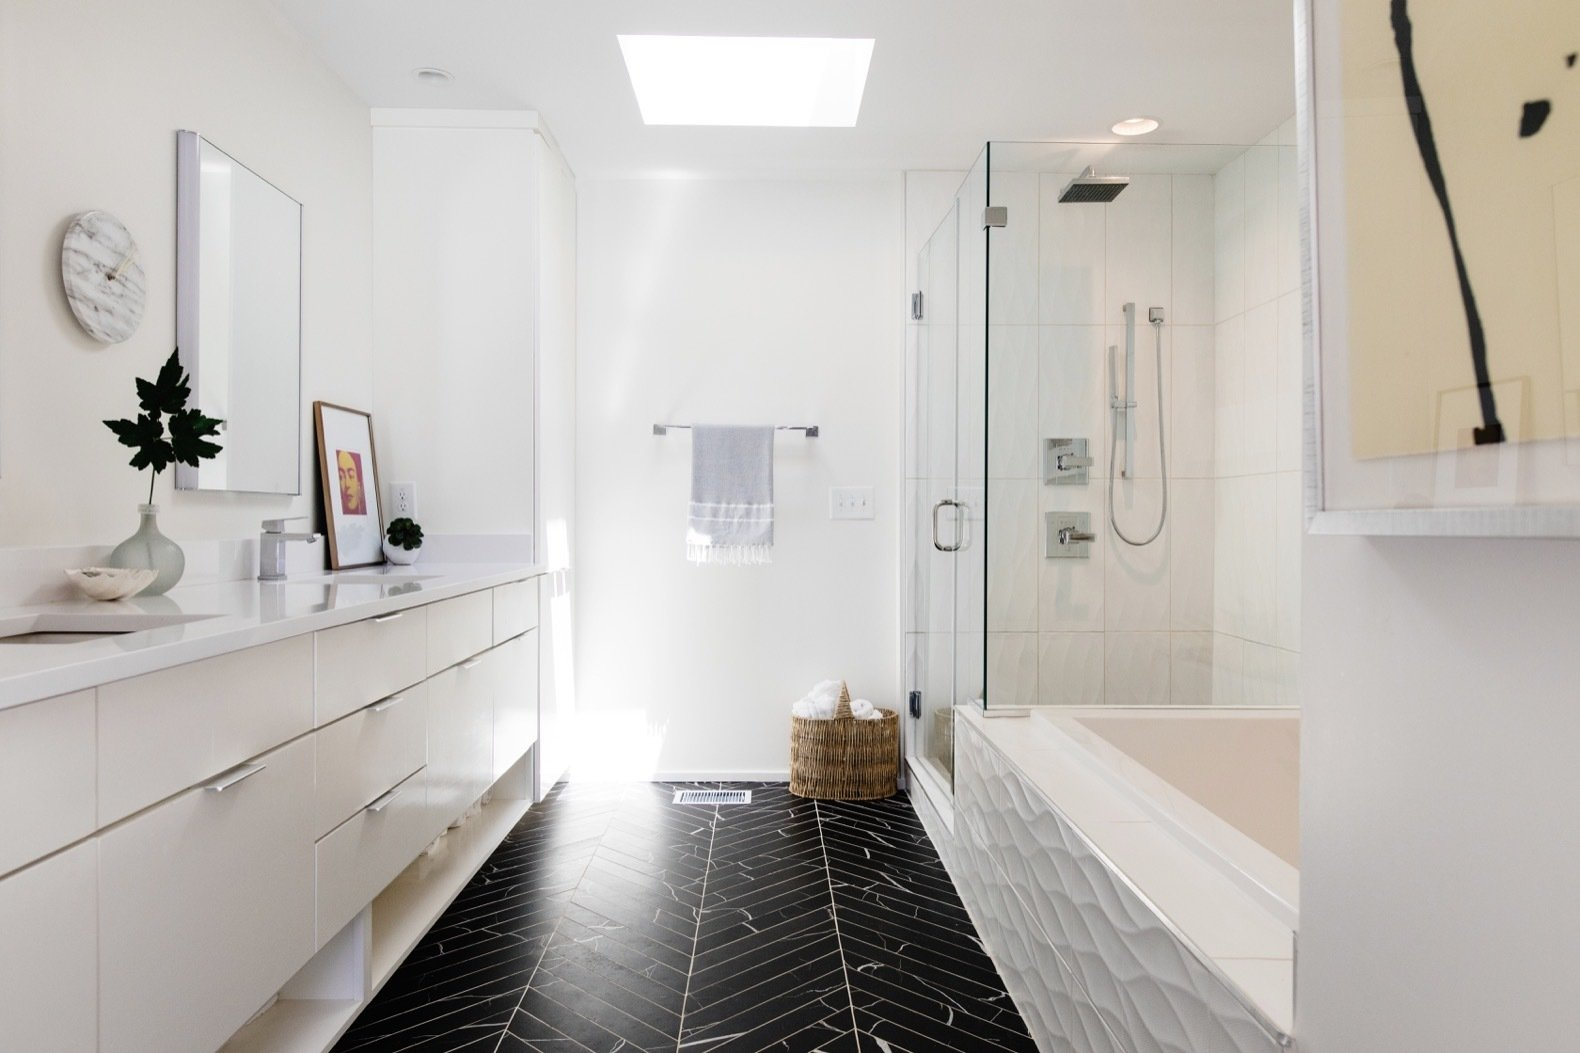 Bath, Enclosed, Recessed, Alcove, Undermount, Porcelain Tile, Soaking, Engineered Quartz, and Corner Marble-like, porcelain tile laid in a herringbone pattern gives the master bath a luxurious feel.  Best Bath Corner Enclosed Photos from Before & After: A Nashville Midcentury Now Gleams With Natural Light